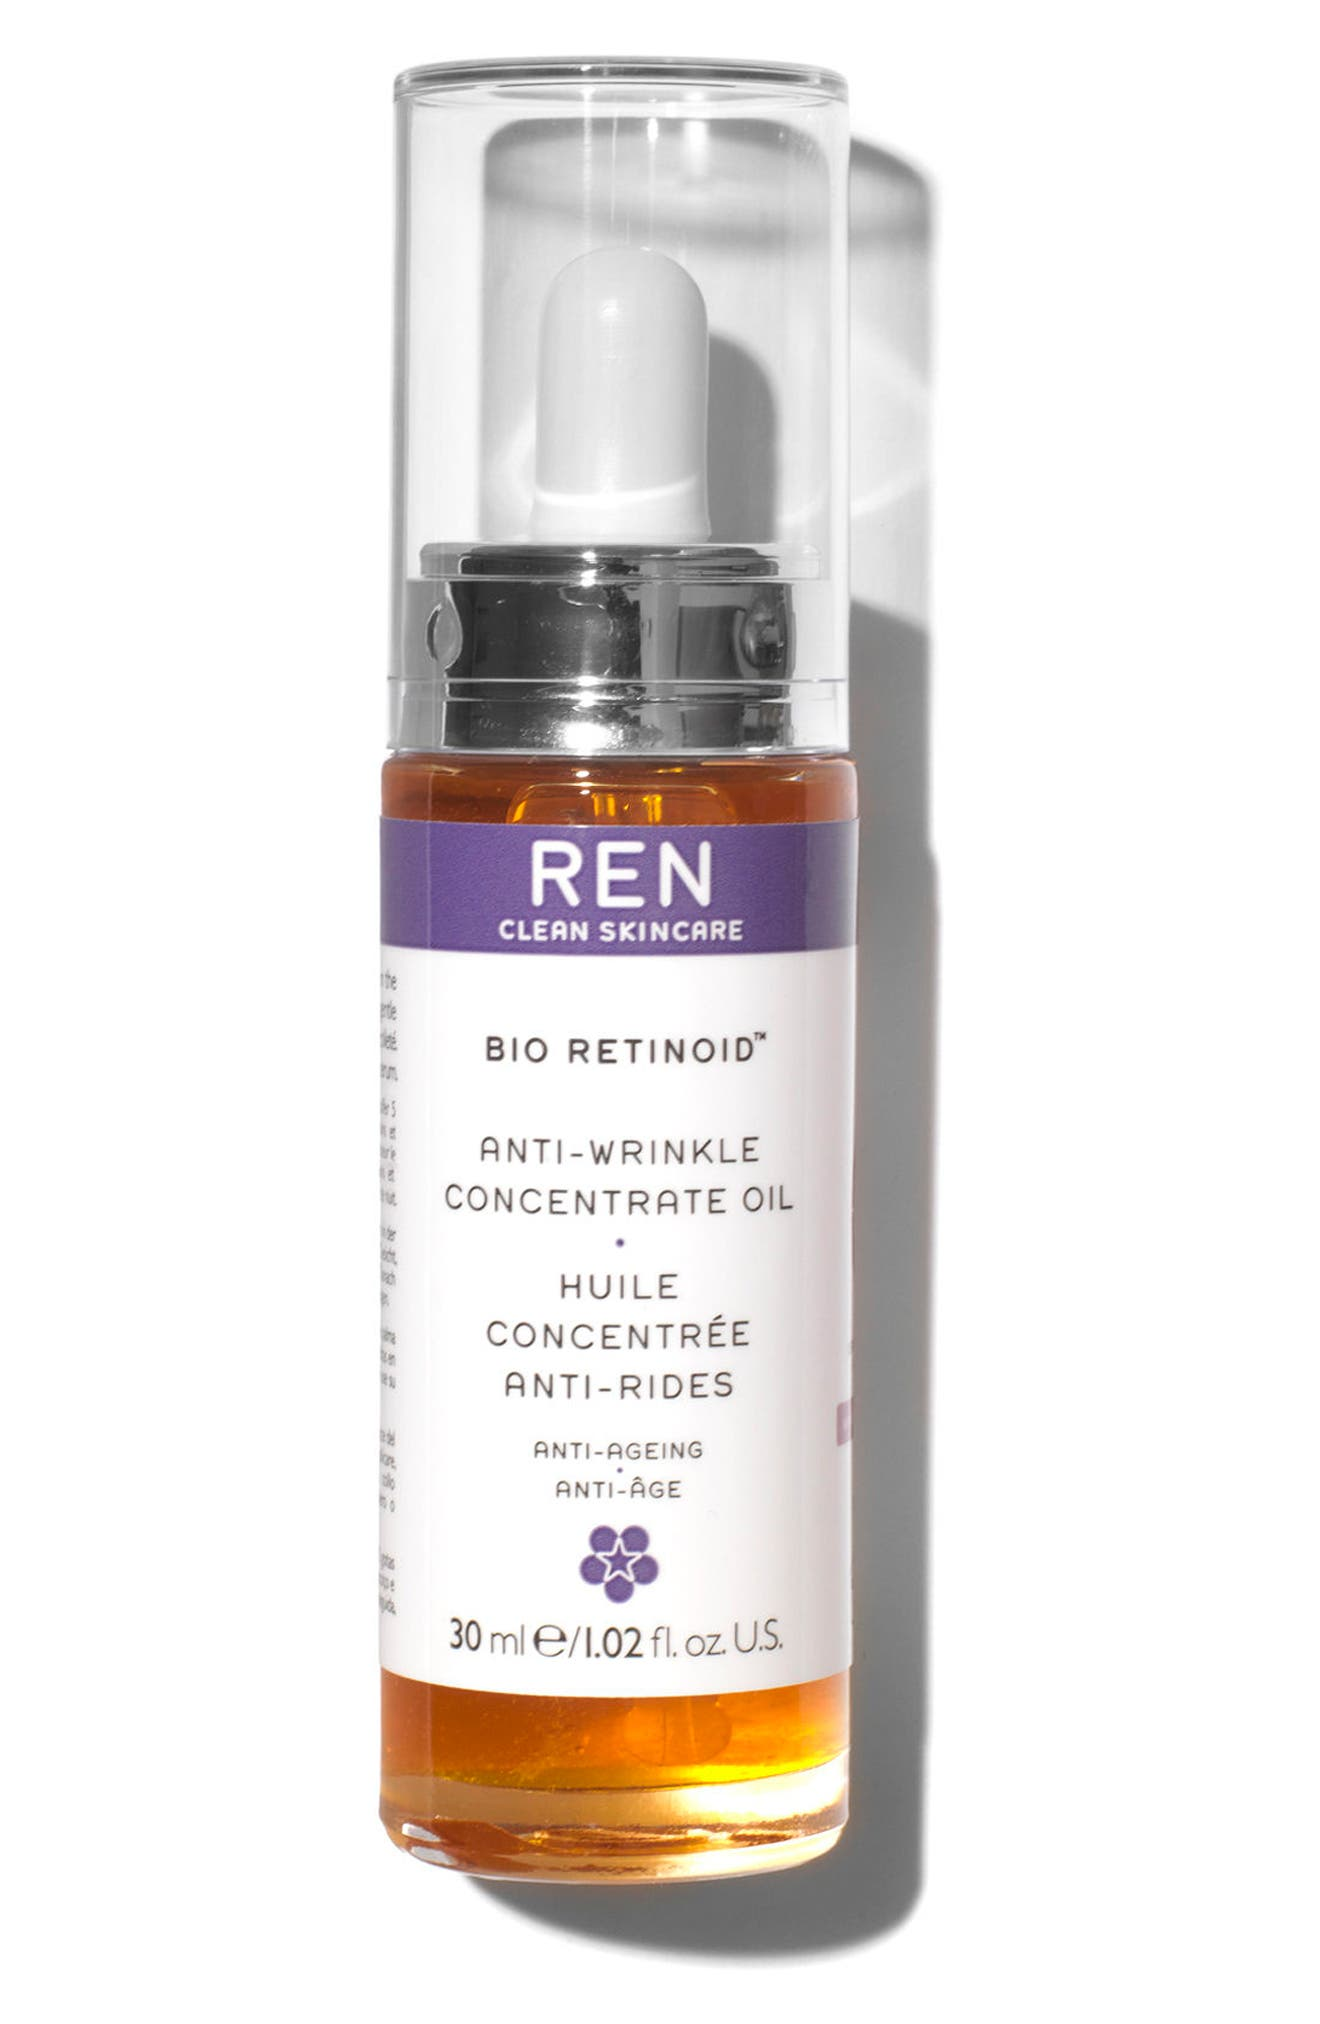 Alternate Image 1 Selected - SPACE.NK.apothecary REN Bio Retinoid Anti-Wrinkle Concentrate Oil